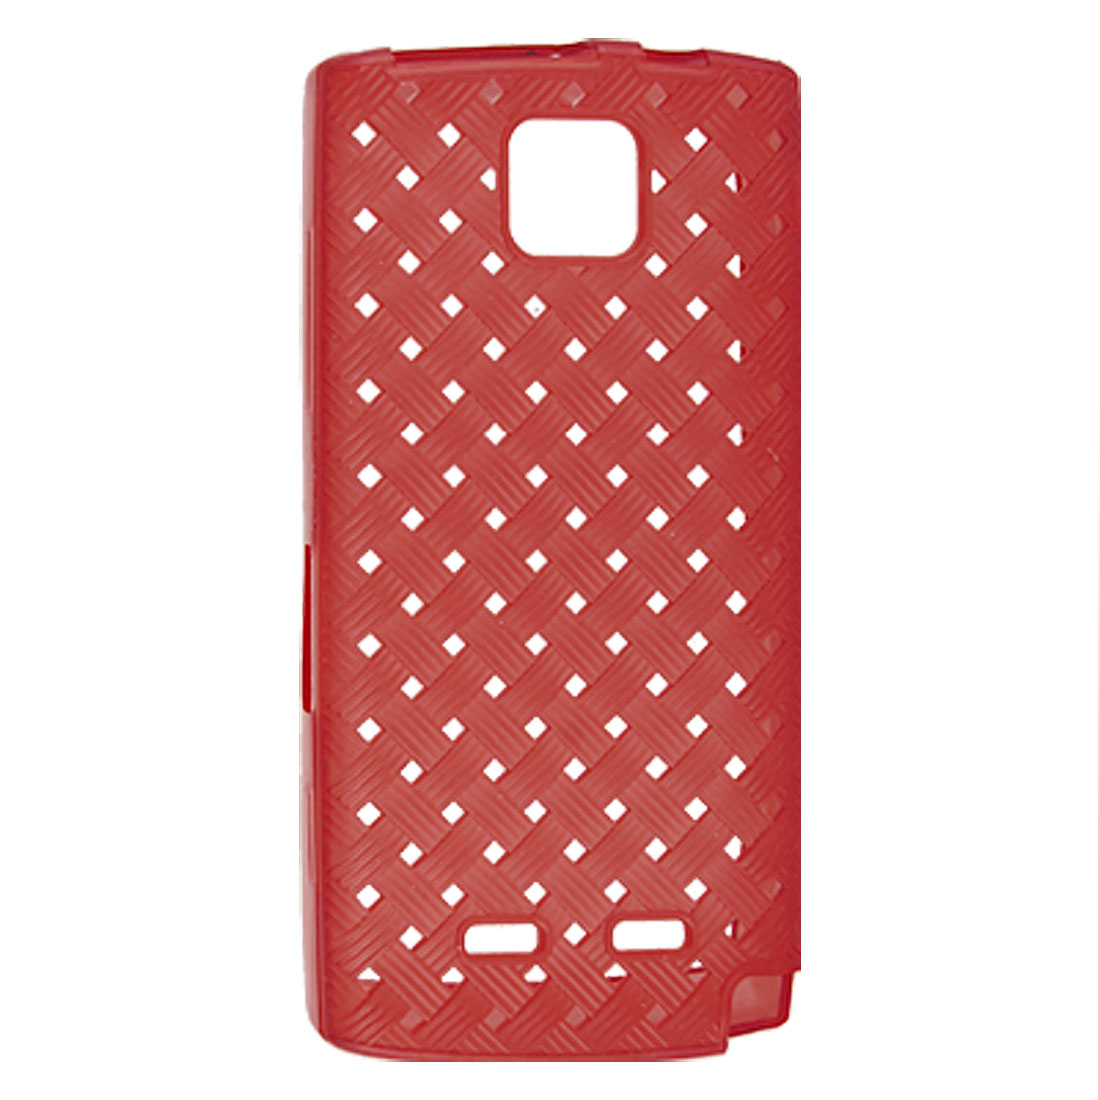 Protective Red Soft Plastic Weave Pattern Case for Nokia 5250